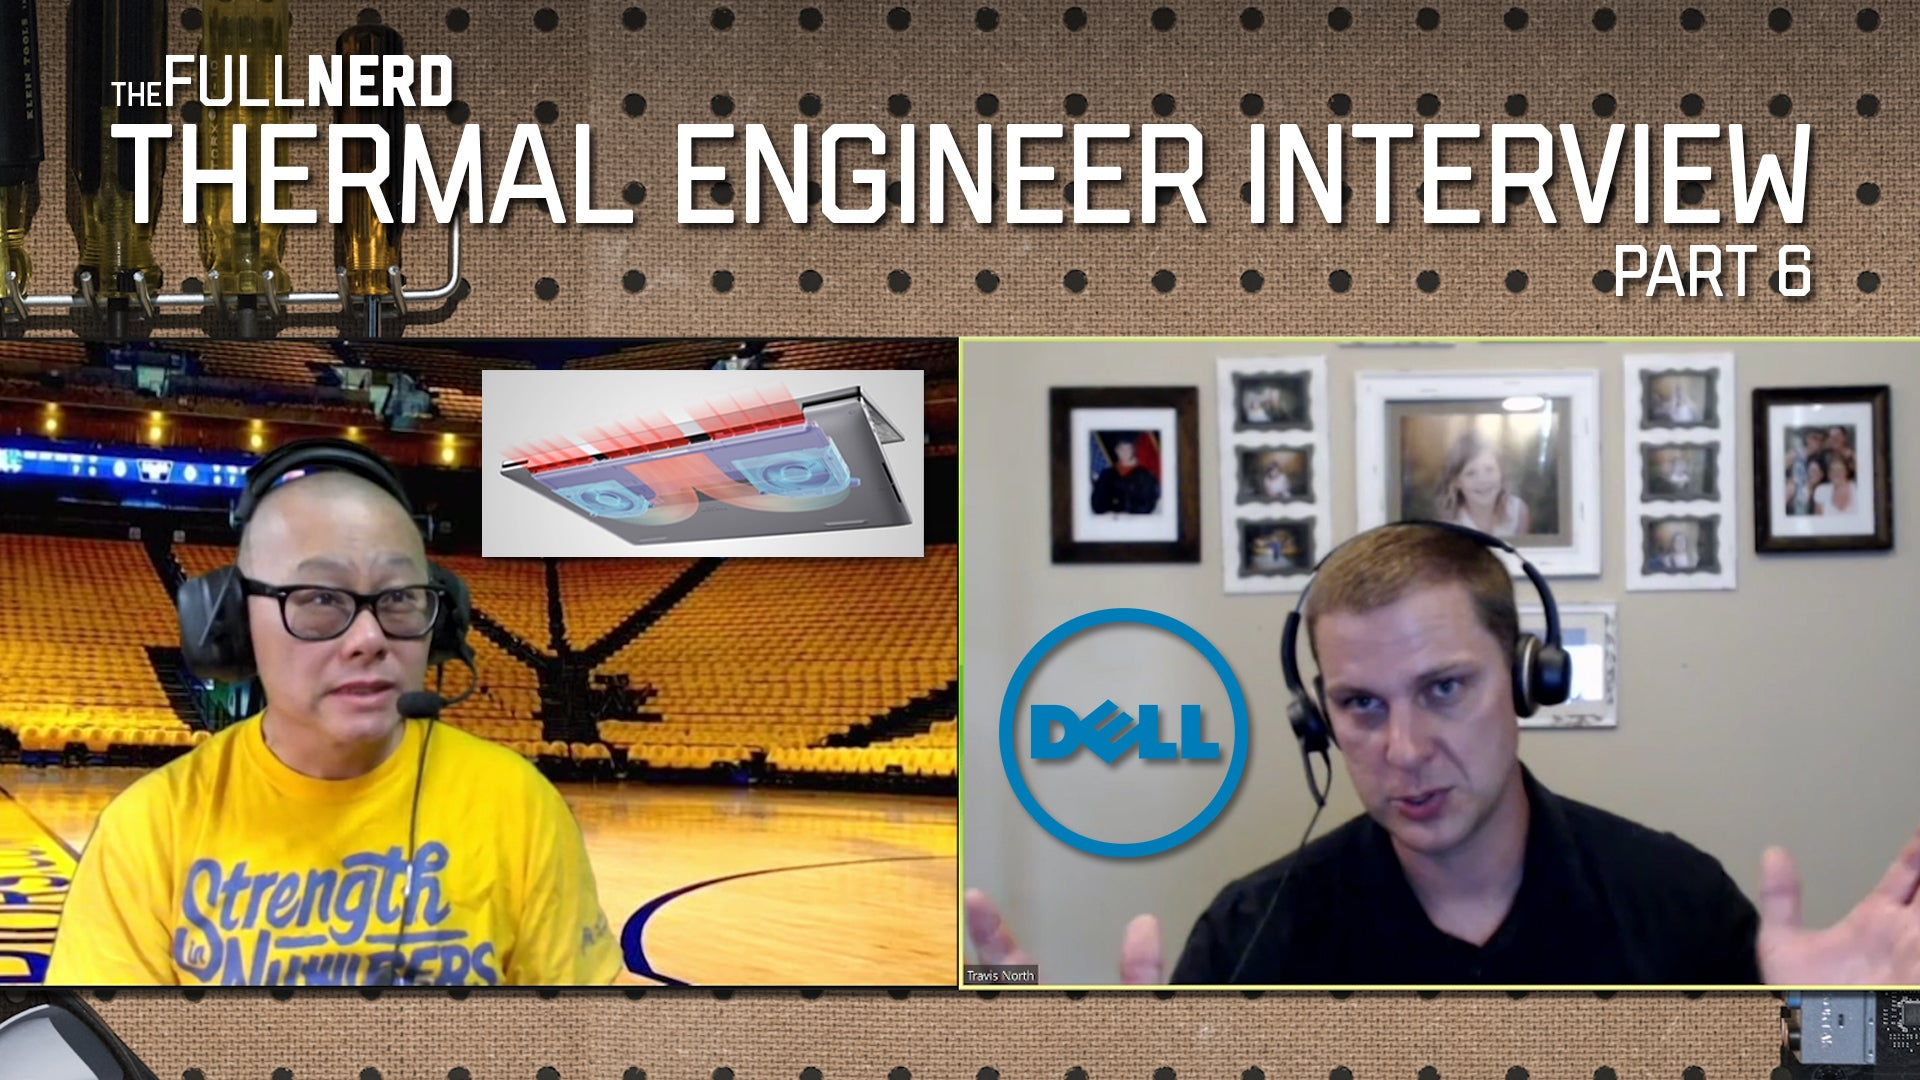 Dell Thermal Engineer interview